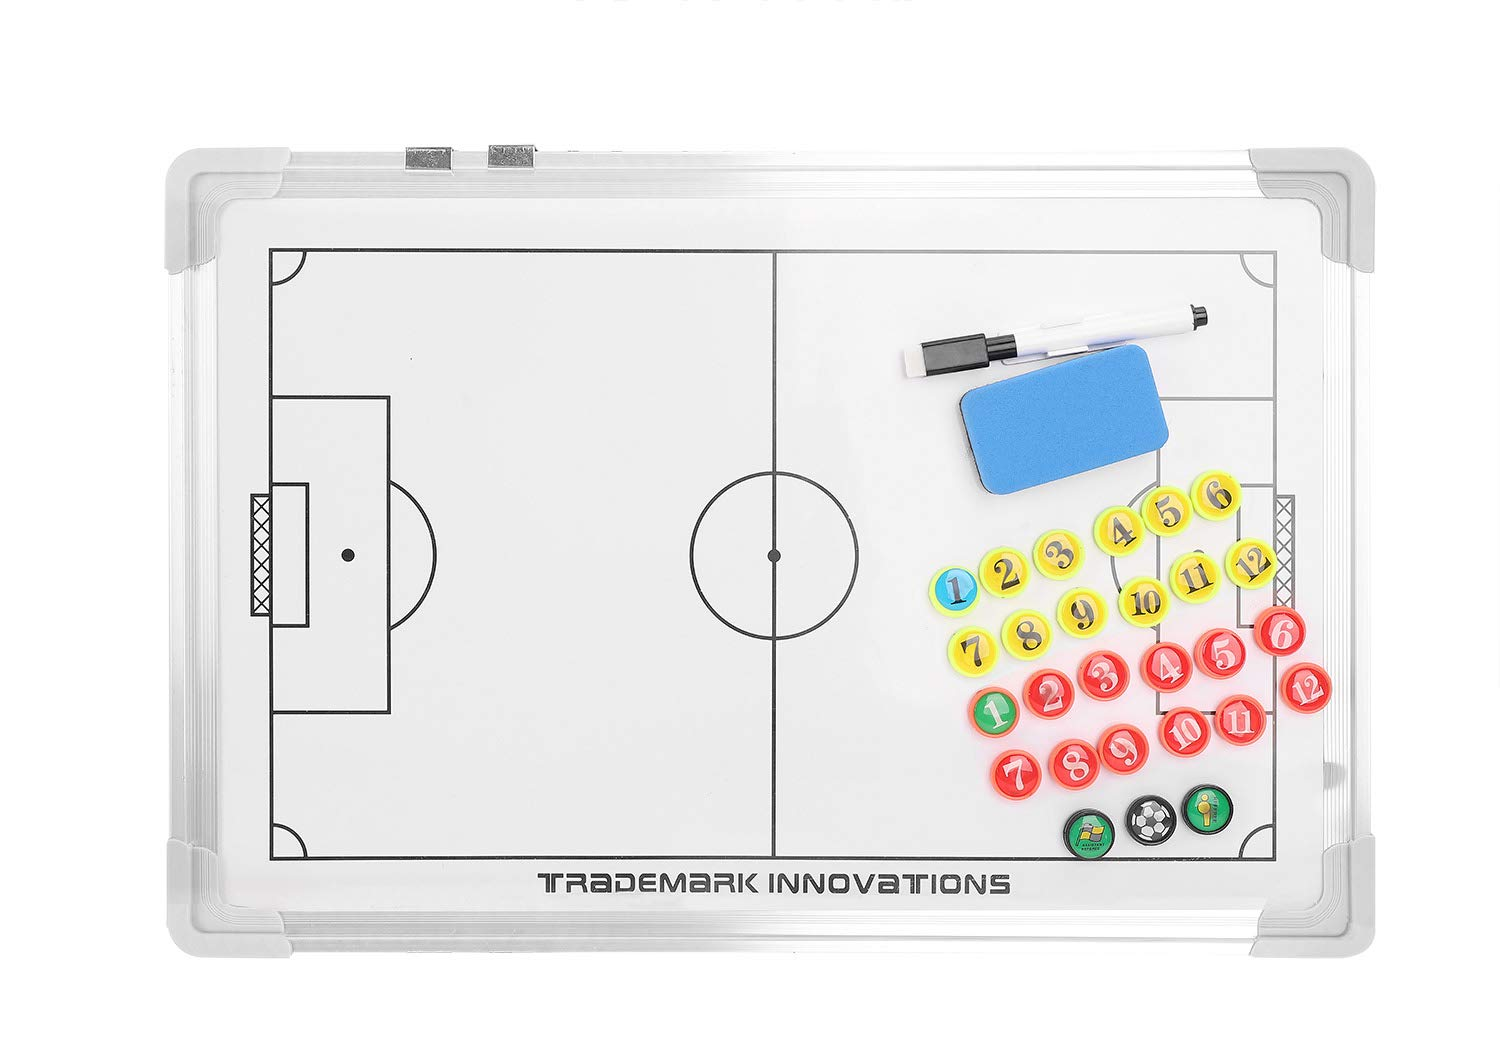 Magentic Soccer Coach Board Lightweight Aluminium Alloy Football Strategy Teaching Board Training Competition Equipment with Pen Eraser Magents Coaches' & Referees' Gear